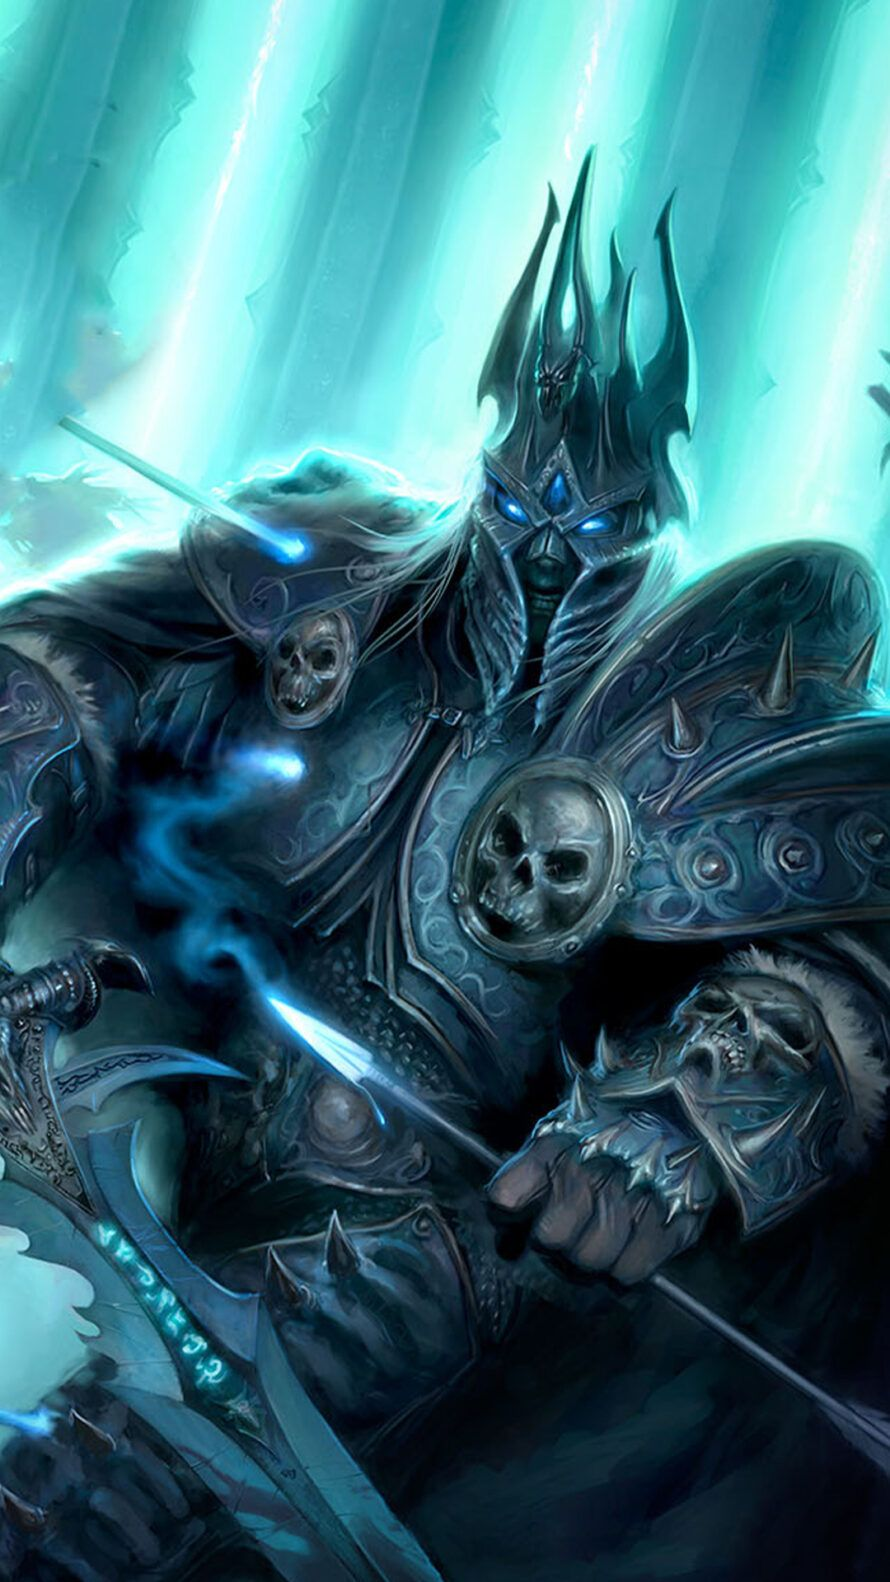 Wrath Of The Lich King Hd Wallpaper In 2020 World Of Warcraft